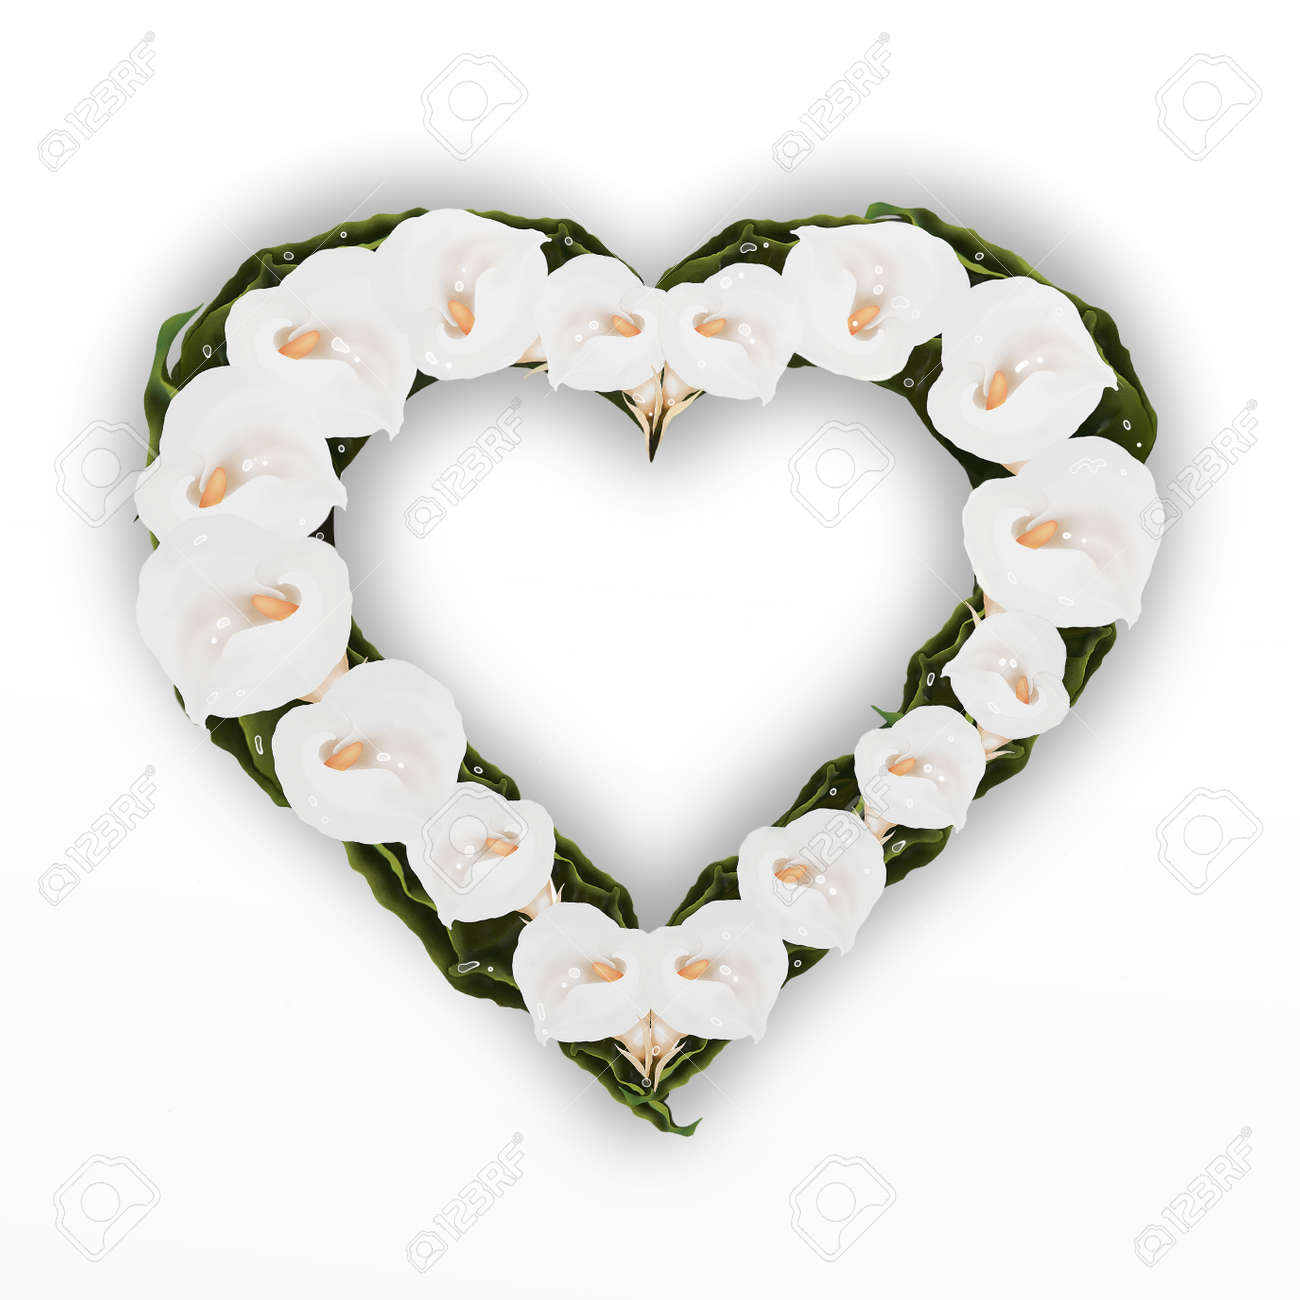 A Beautifully Heart Frame Of White Calla Lily Flower, Isolated ...